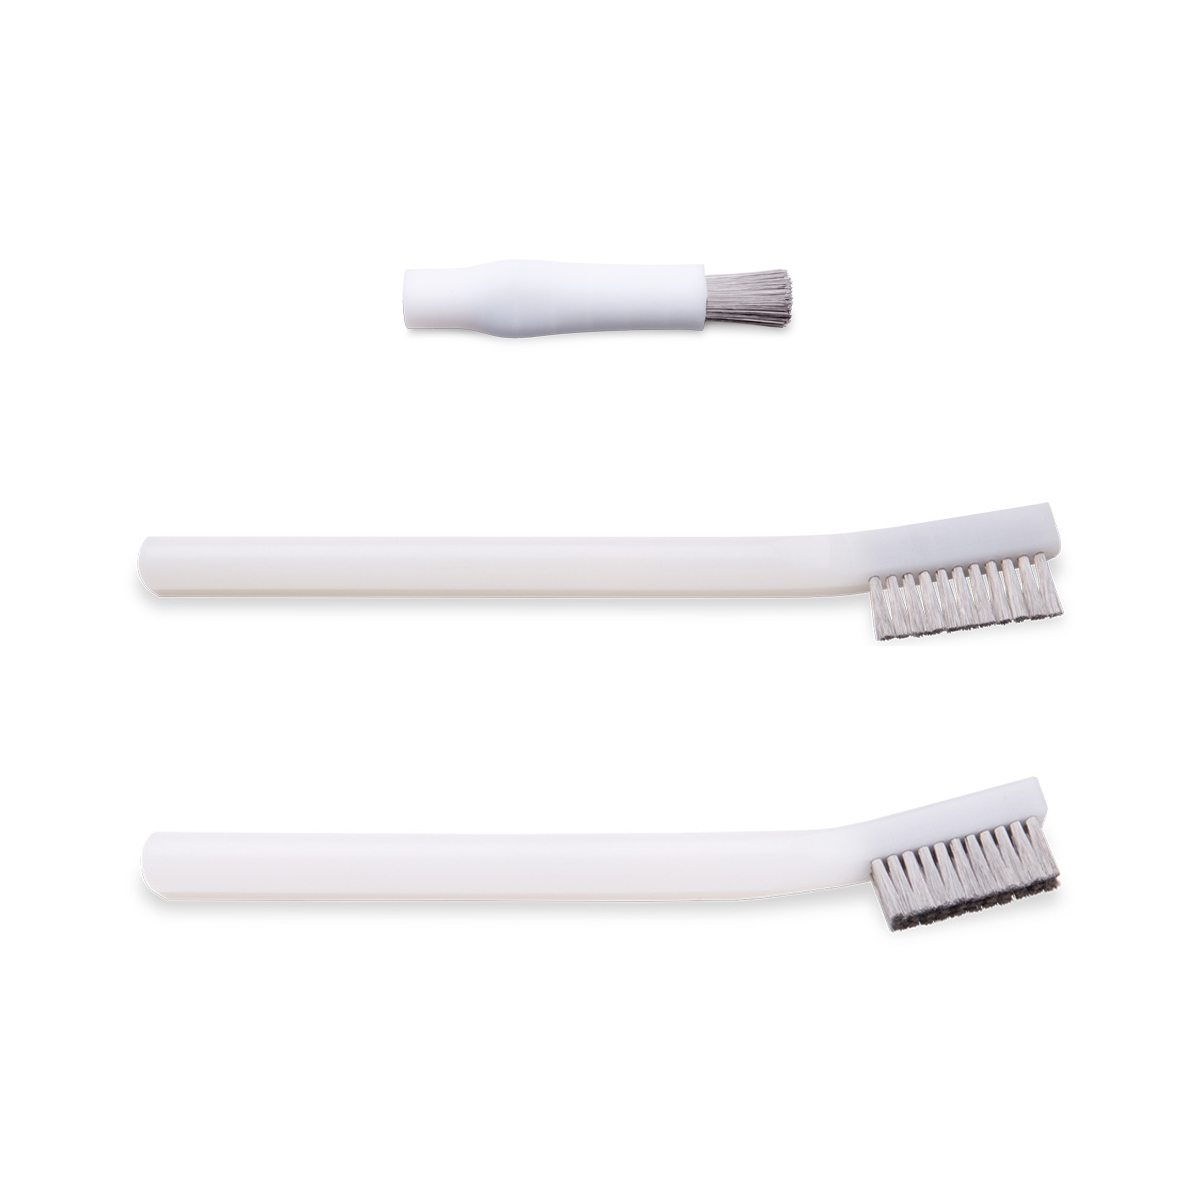 Burr Cleaning Brush Assortment  Image